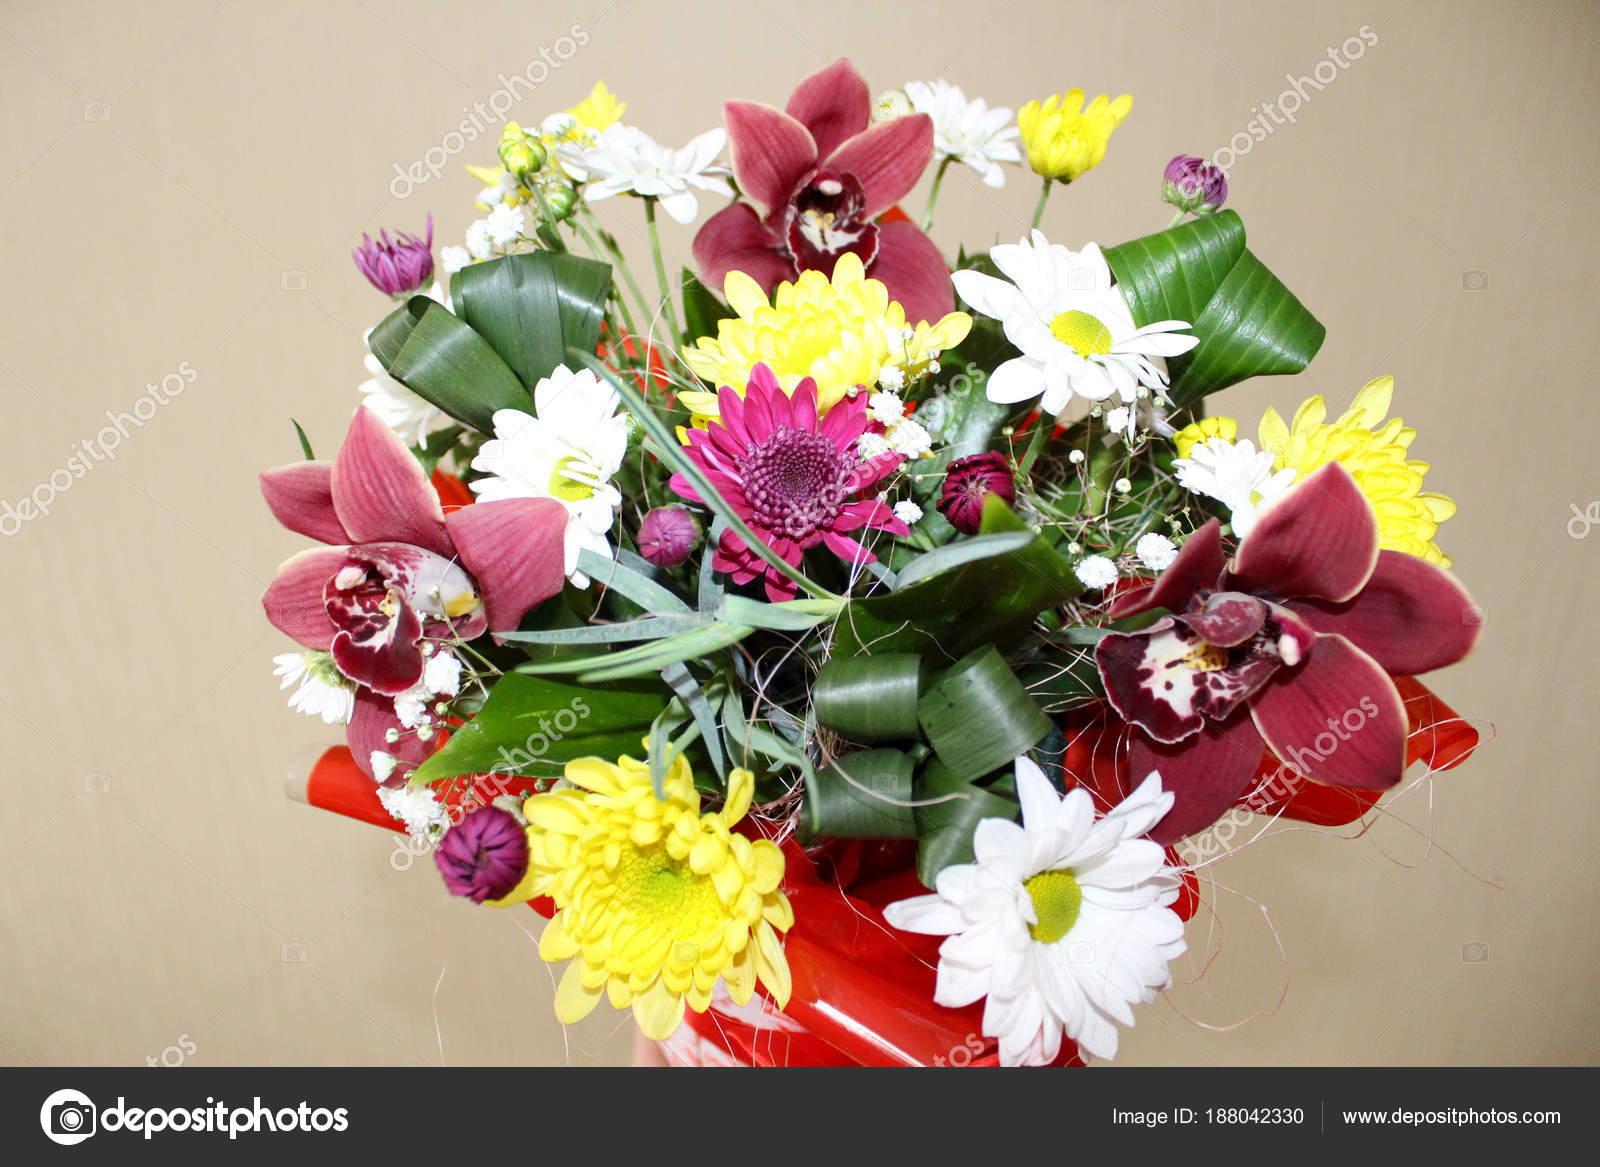 Beautiful flowers of a orchid in a box stock photo smirmaxstock gift box with beautiful orchid flowers for girls photo by smirmaxstock izmirmasajfo